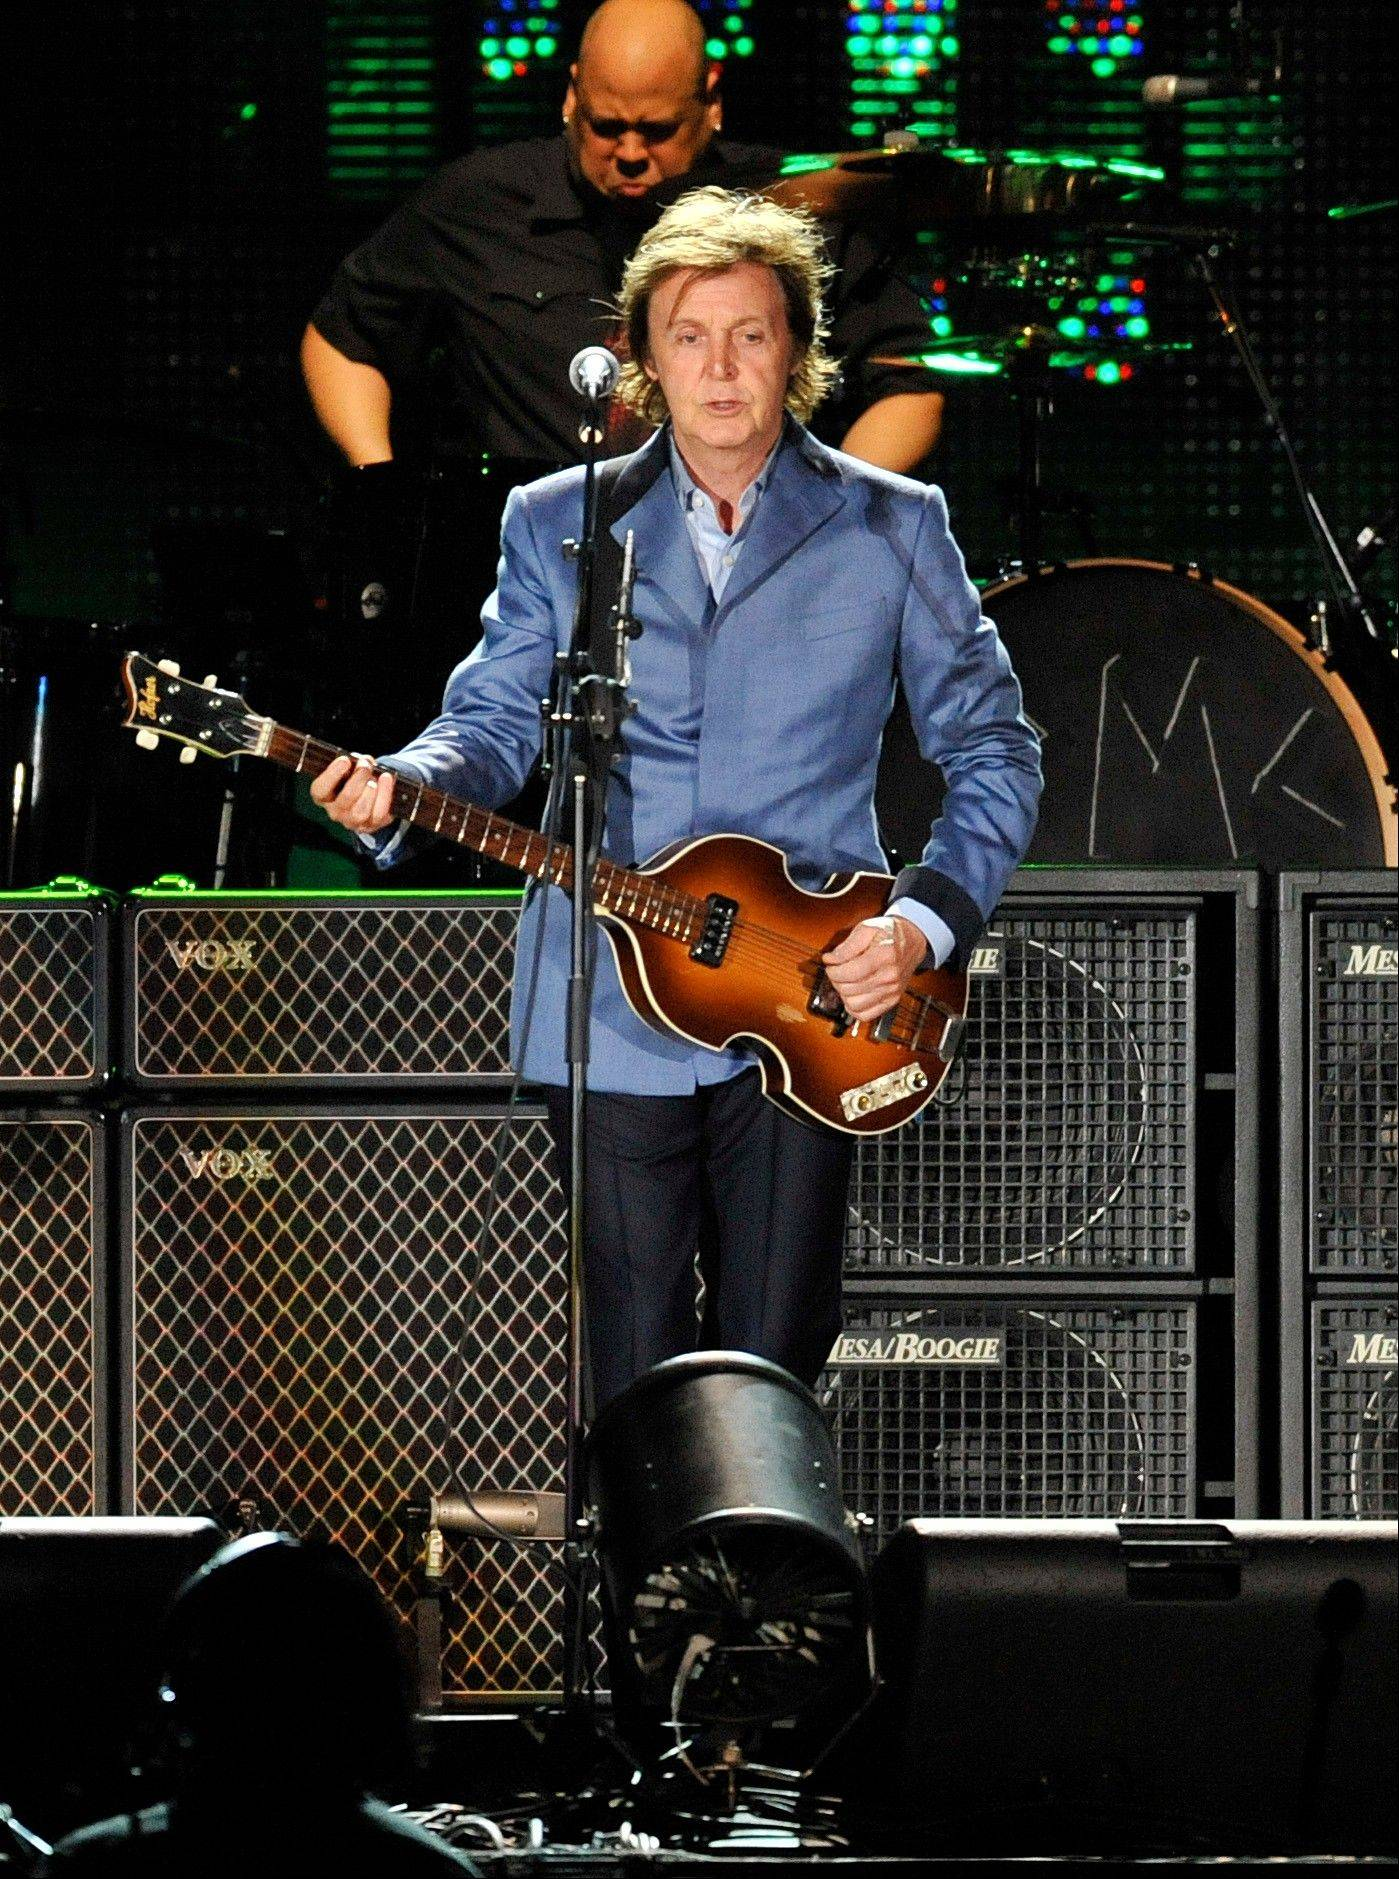 Paul McCartney performs at Wrigley Field, Sunday, July 31, 2011 in Chicago.